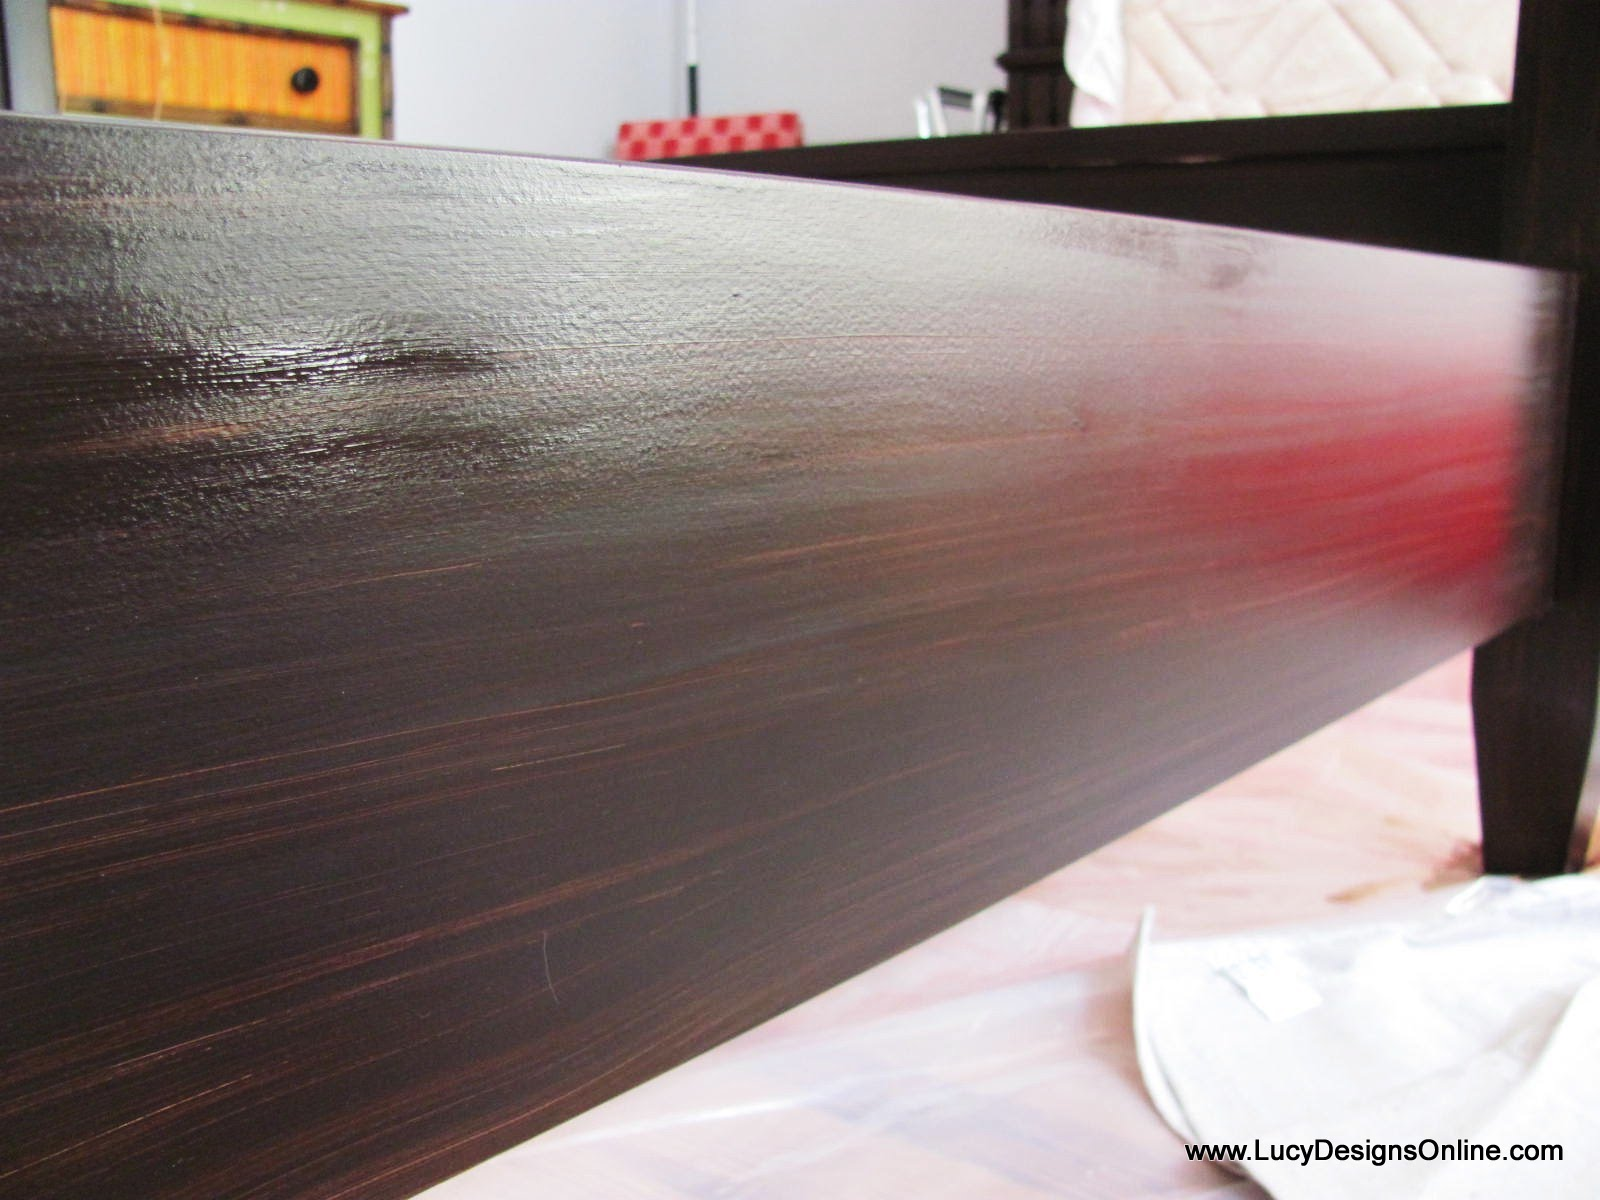 Gel Stain over White Furniture   Lucy Designs